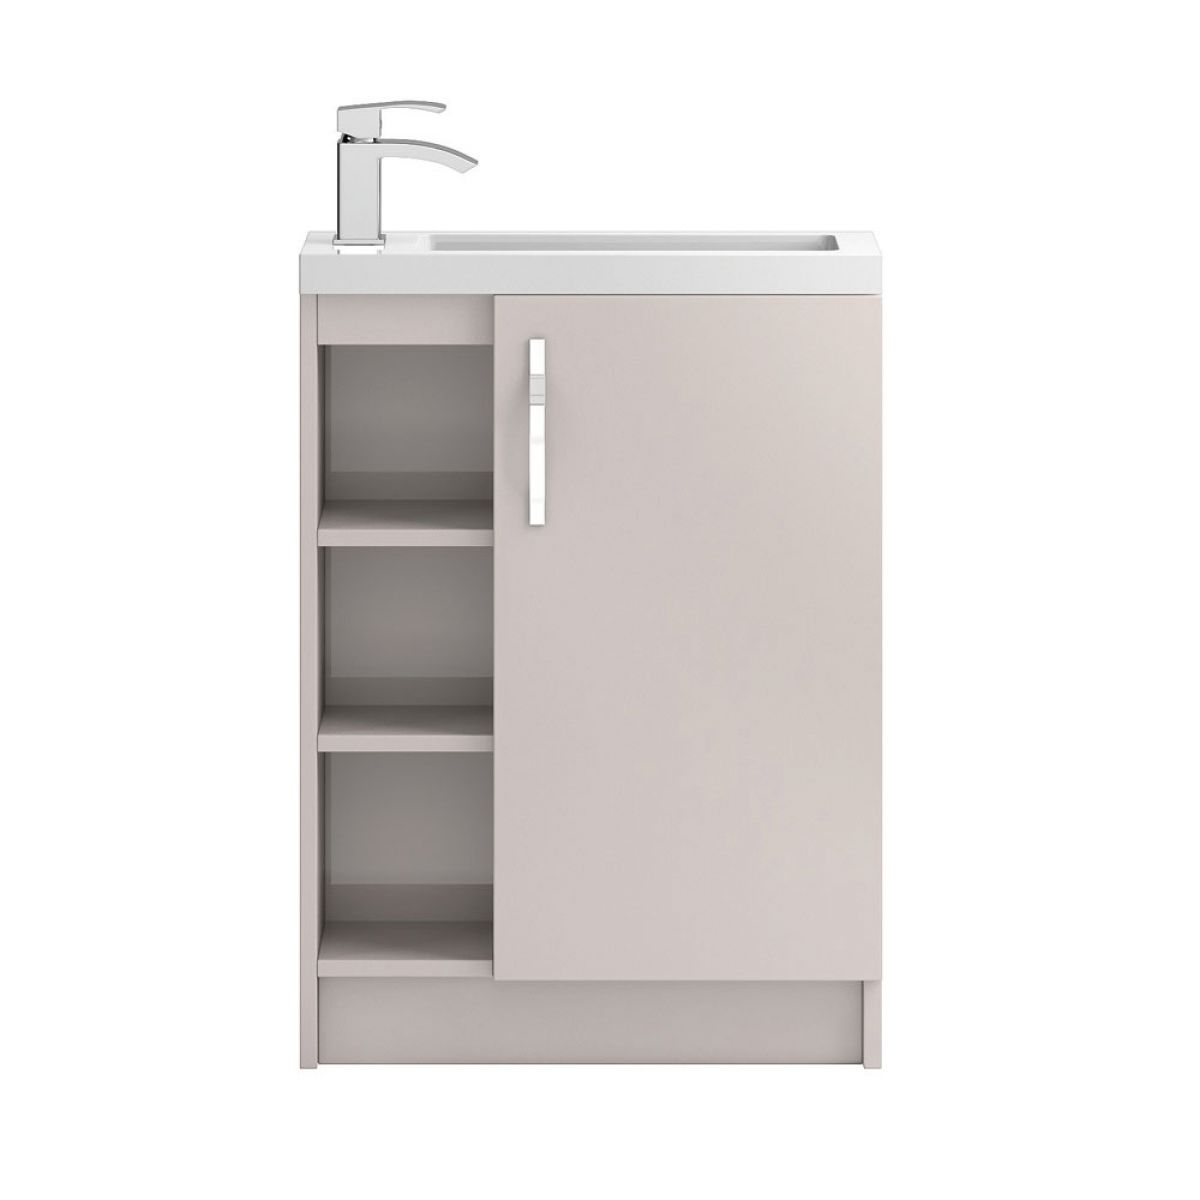 Hudson Reed Apollo Compact Gloss Cashmere Floor Standing Open Vanity Unit 600mm